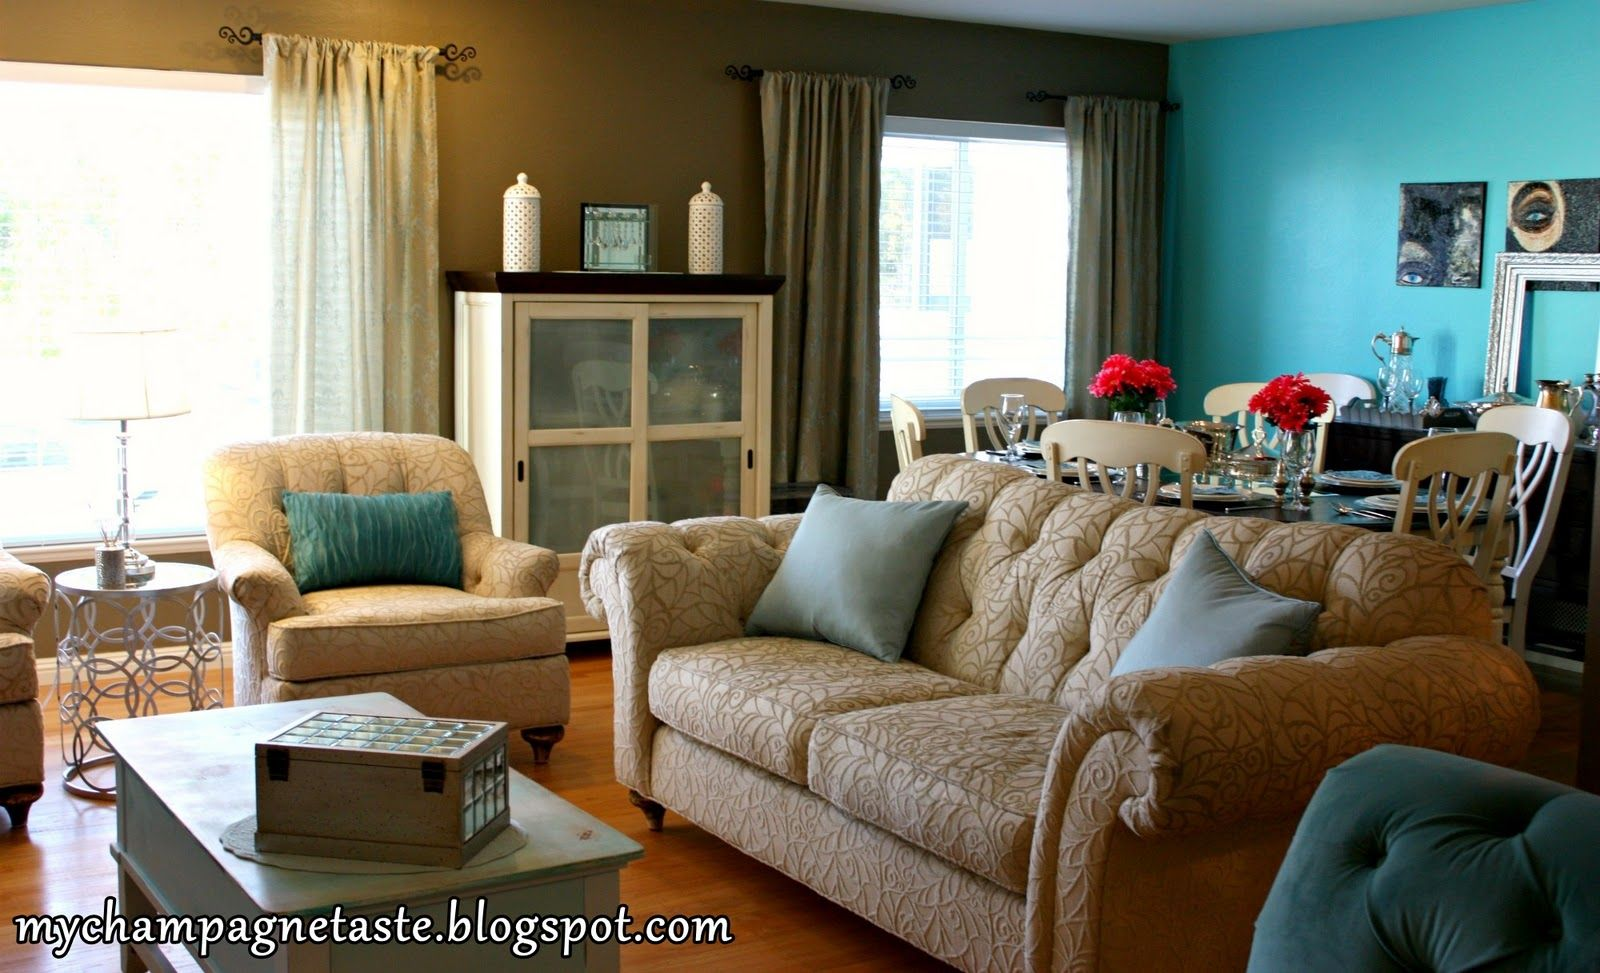 Champagne taste turquoise living and dining room i love her dining living room minus the hot pink flowers and weird eye paintings